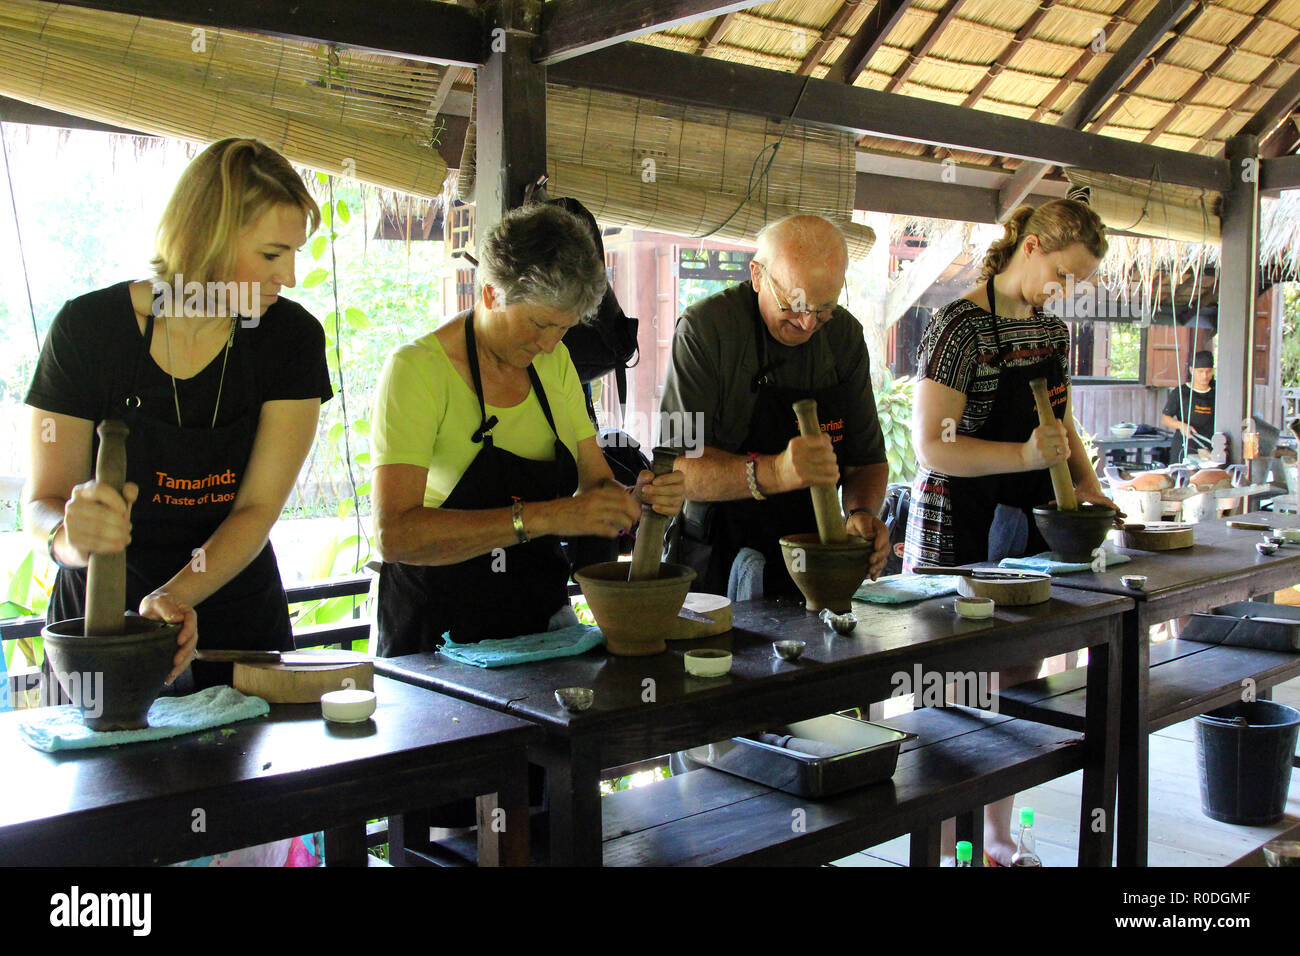 Students in a Laotian cooking class mash their ingredients, Tamarind Cooking School, Luang Prabang, Laos - Stock Image